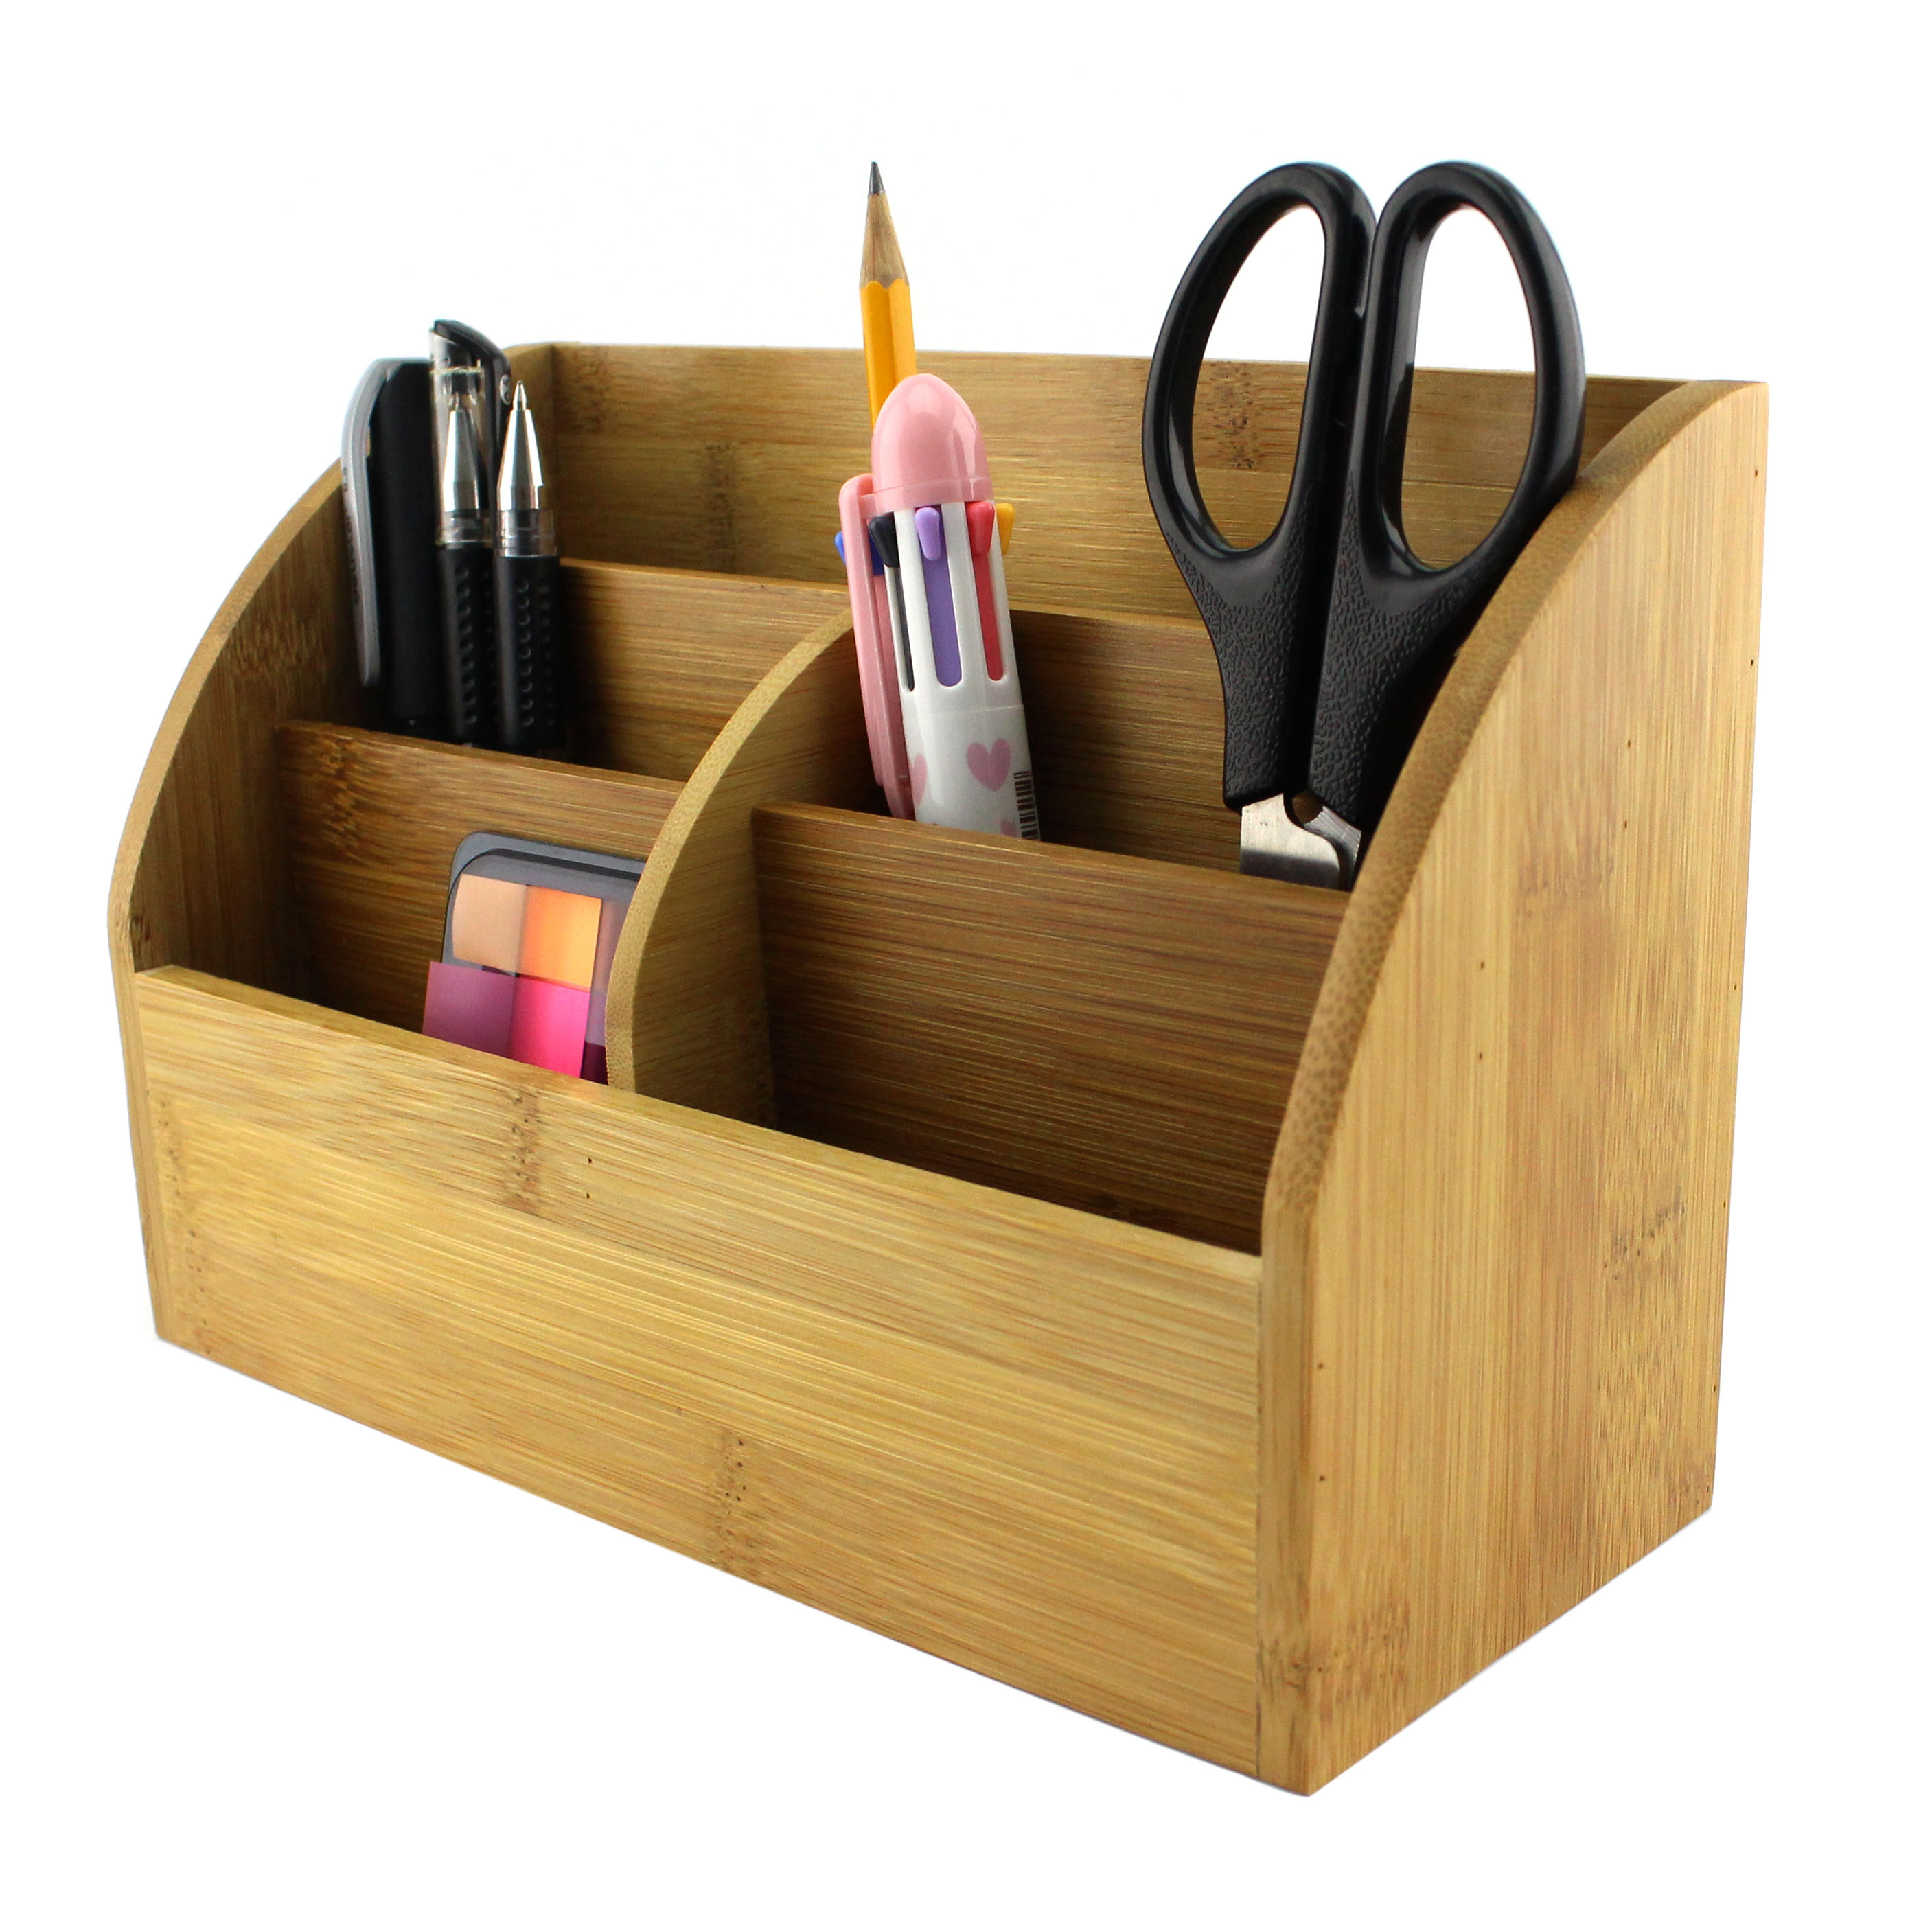 Homex bamboo desk organizer with pencil holder homex - Over the desk organizer ...